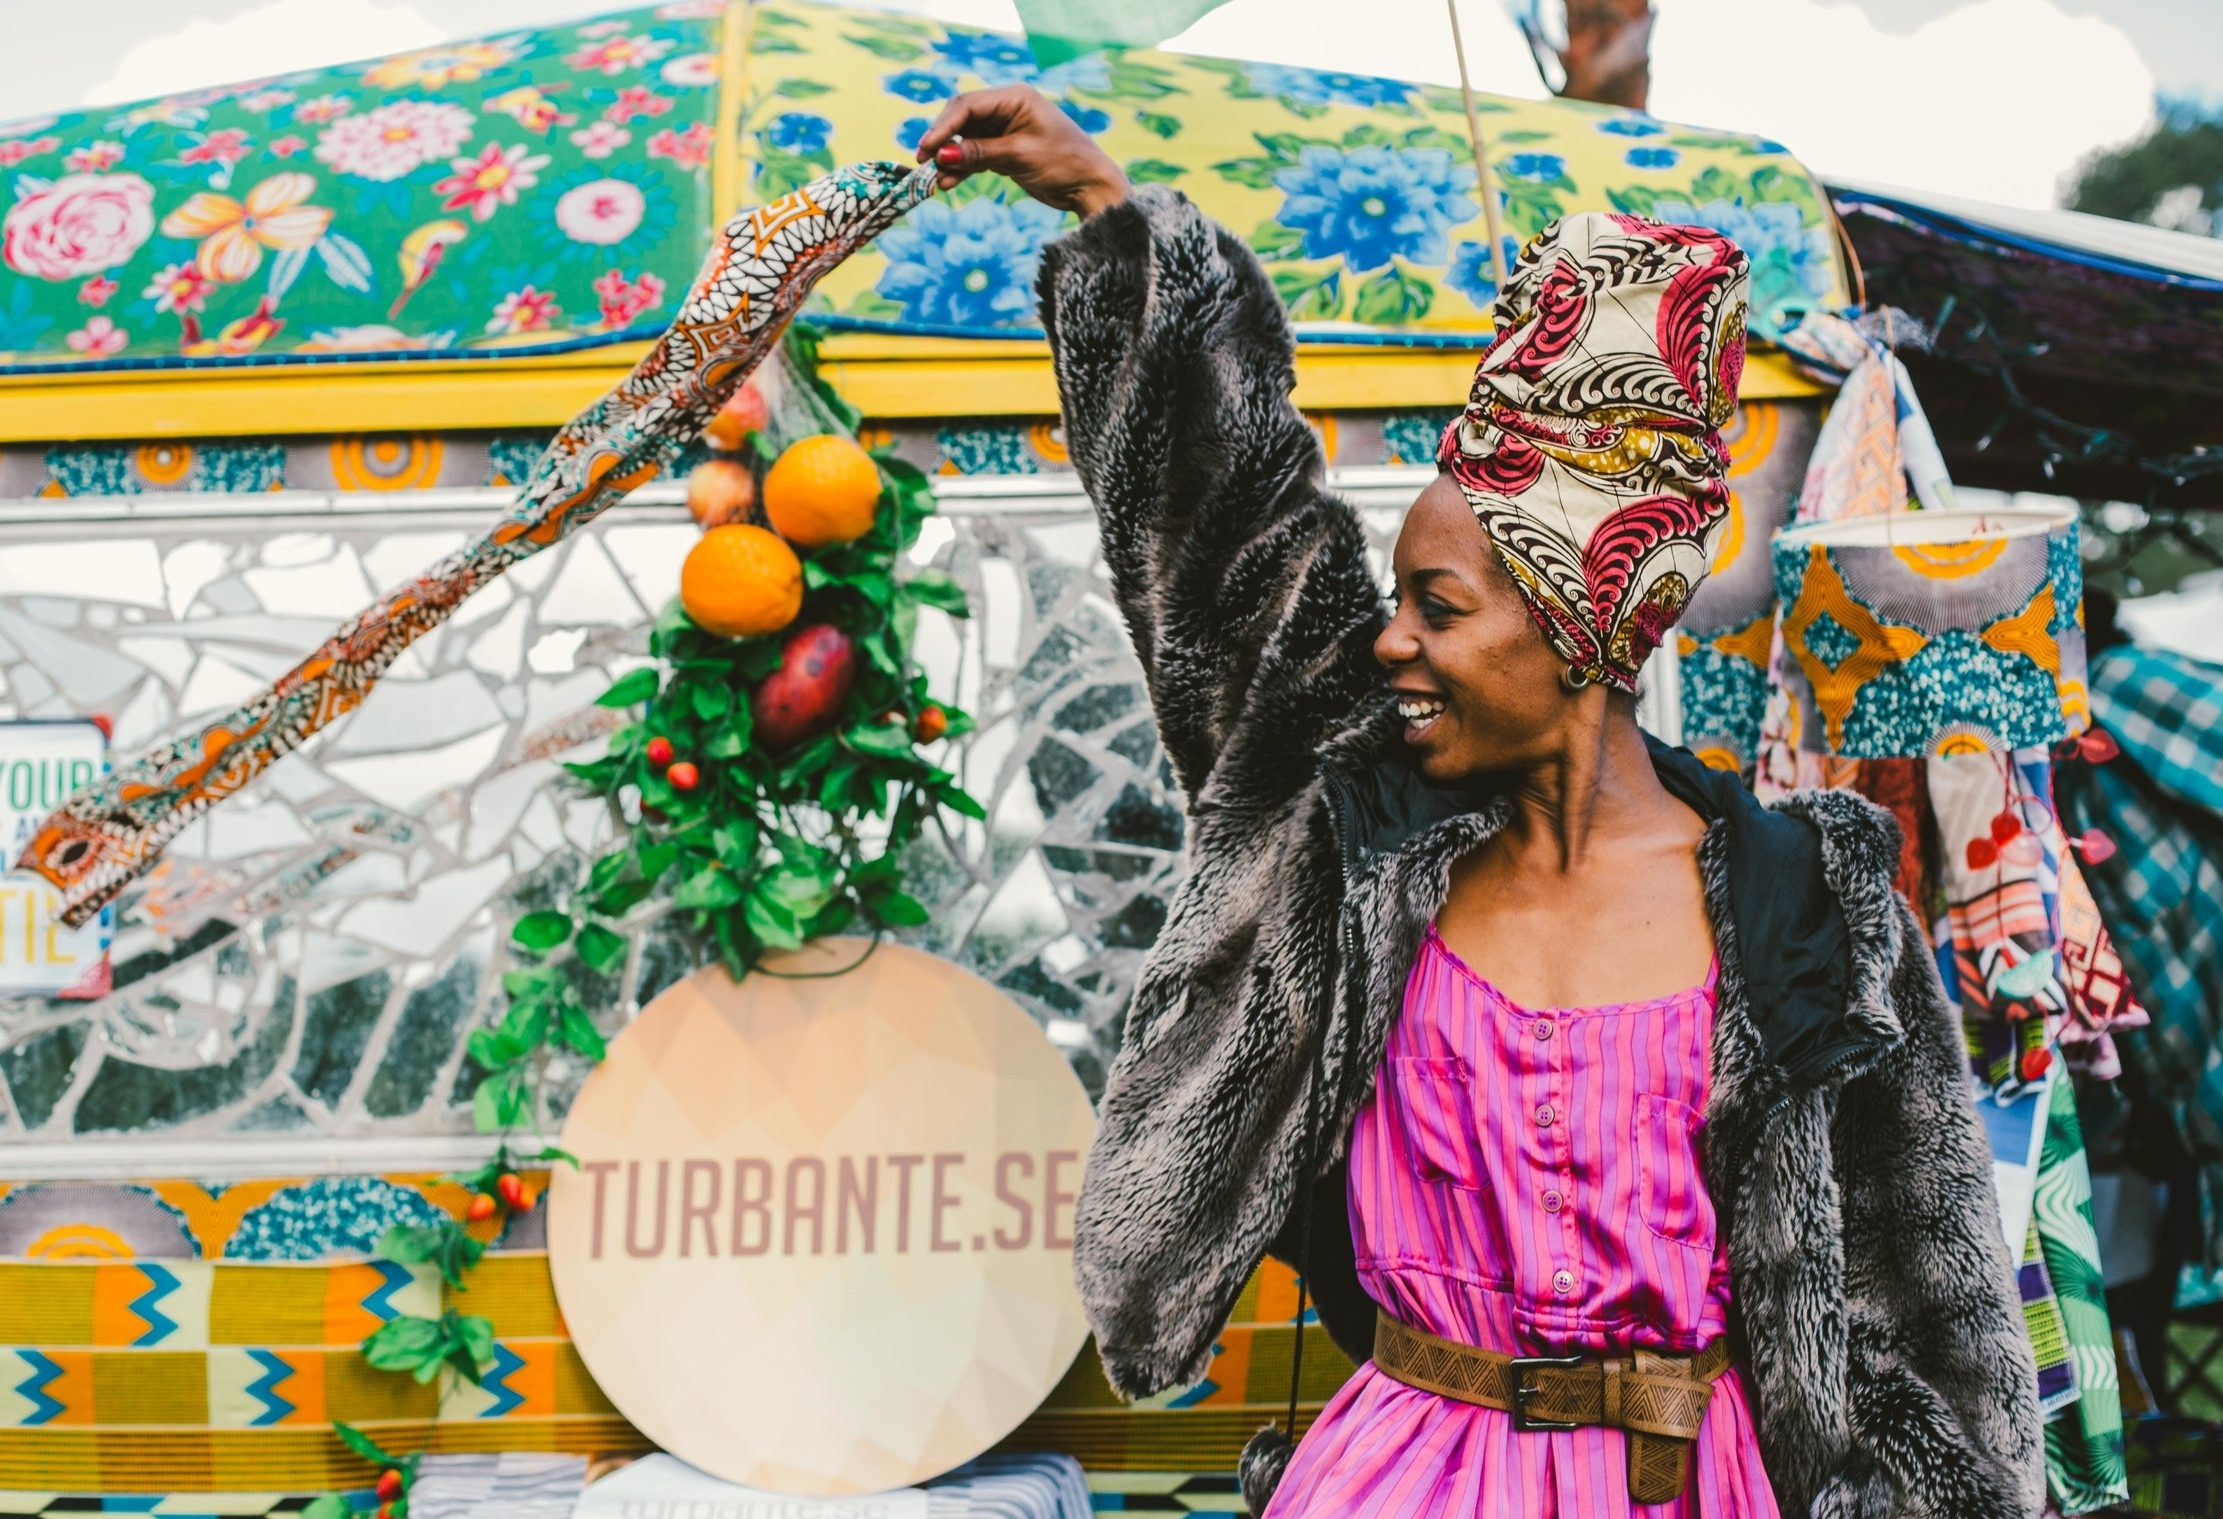 Events - From festivals to museums,Turbante-se brings history and activies for different events around the world.